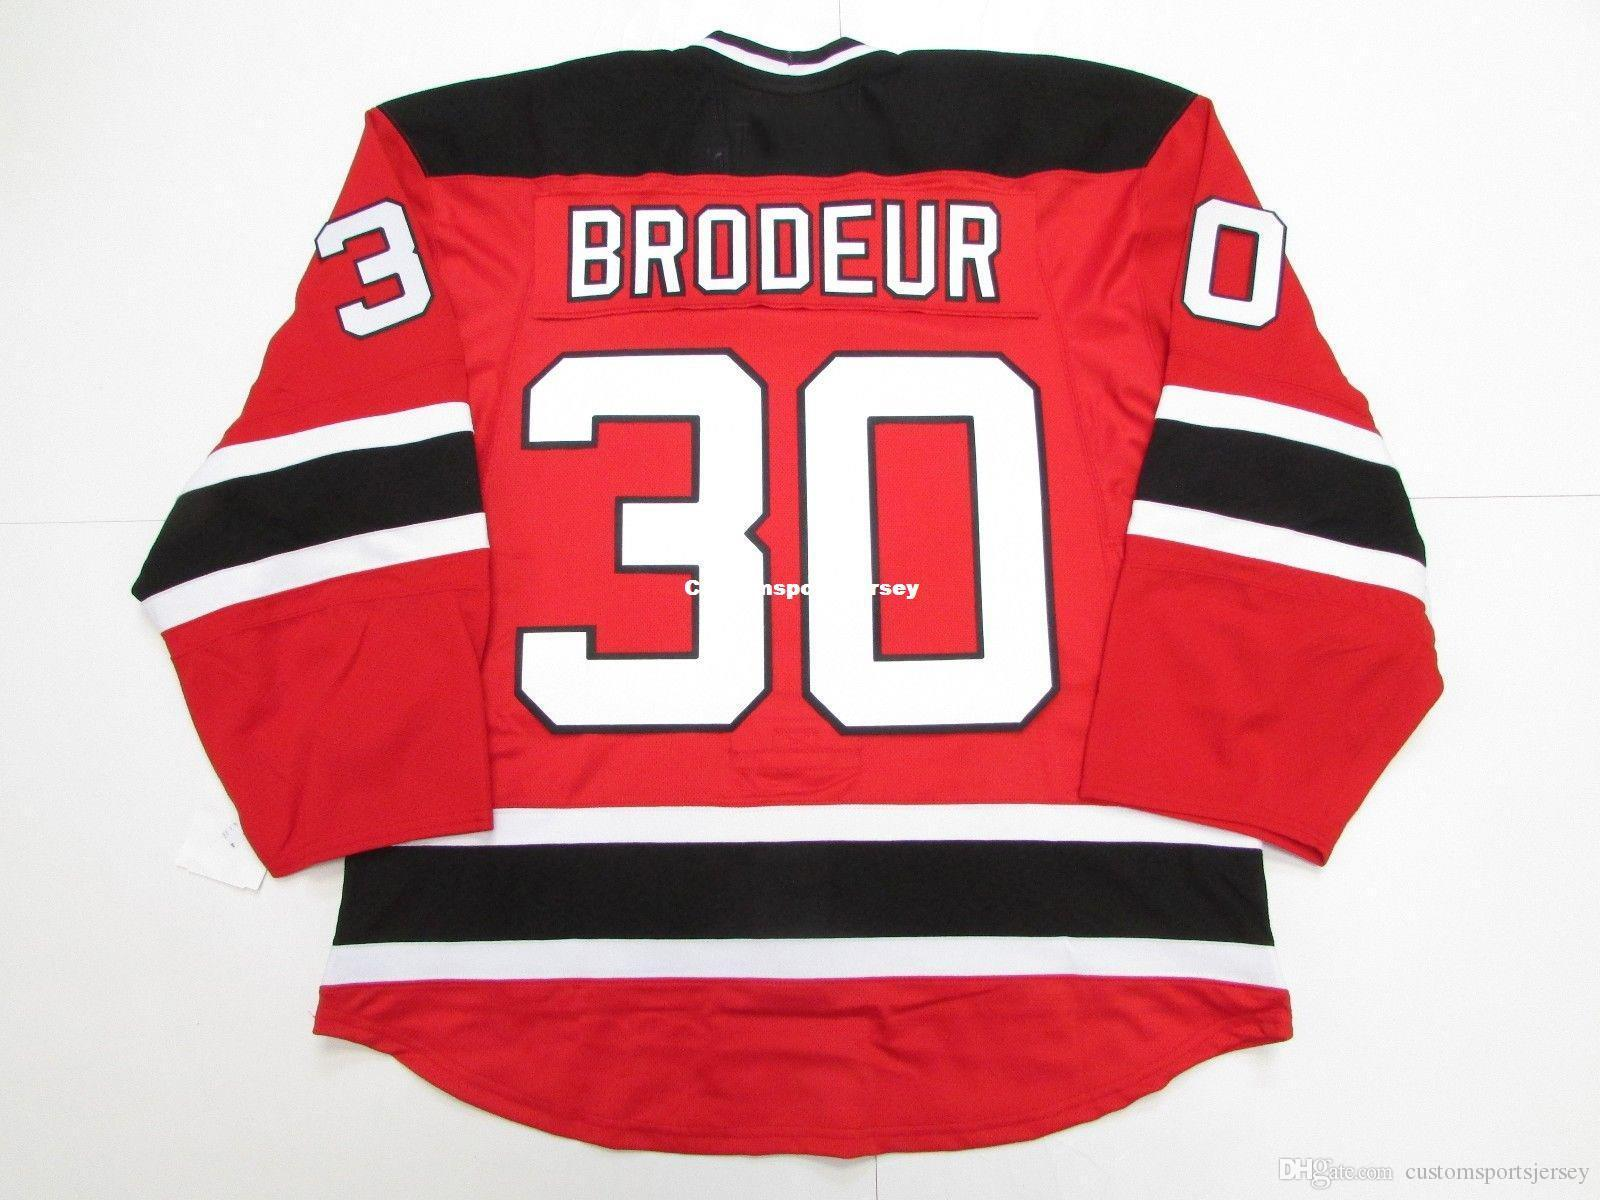 2019 Cheap Custom Martin Brodeur New Jersey Devils Home Edge 2 0 7287 Jersey Stitch Add Any Number Any Name Mens Hockey Jersey Xs 5xl From